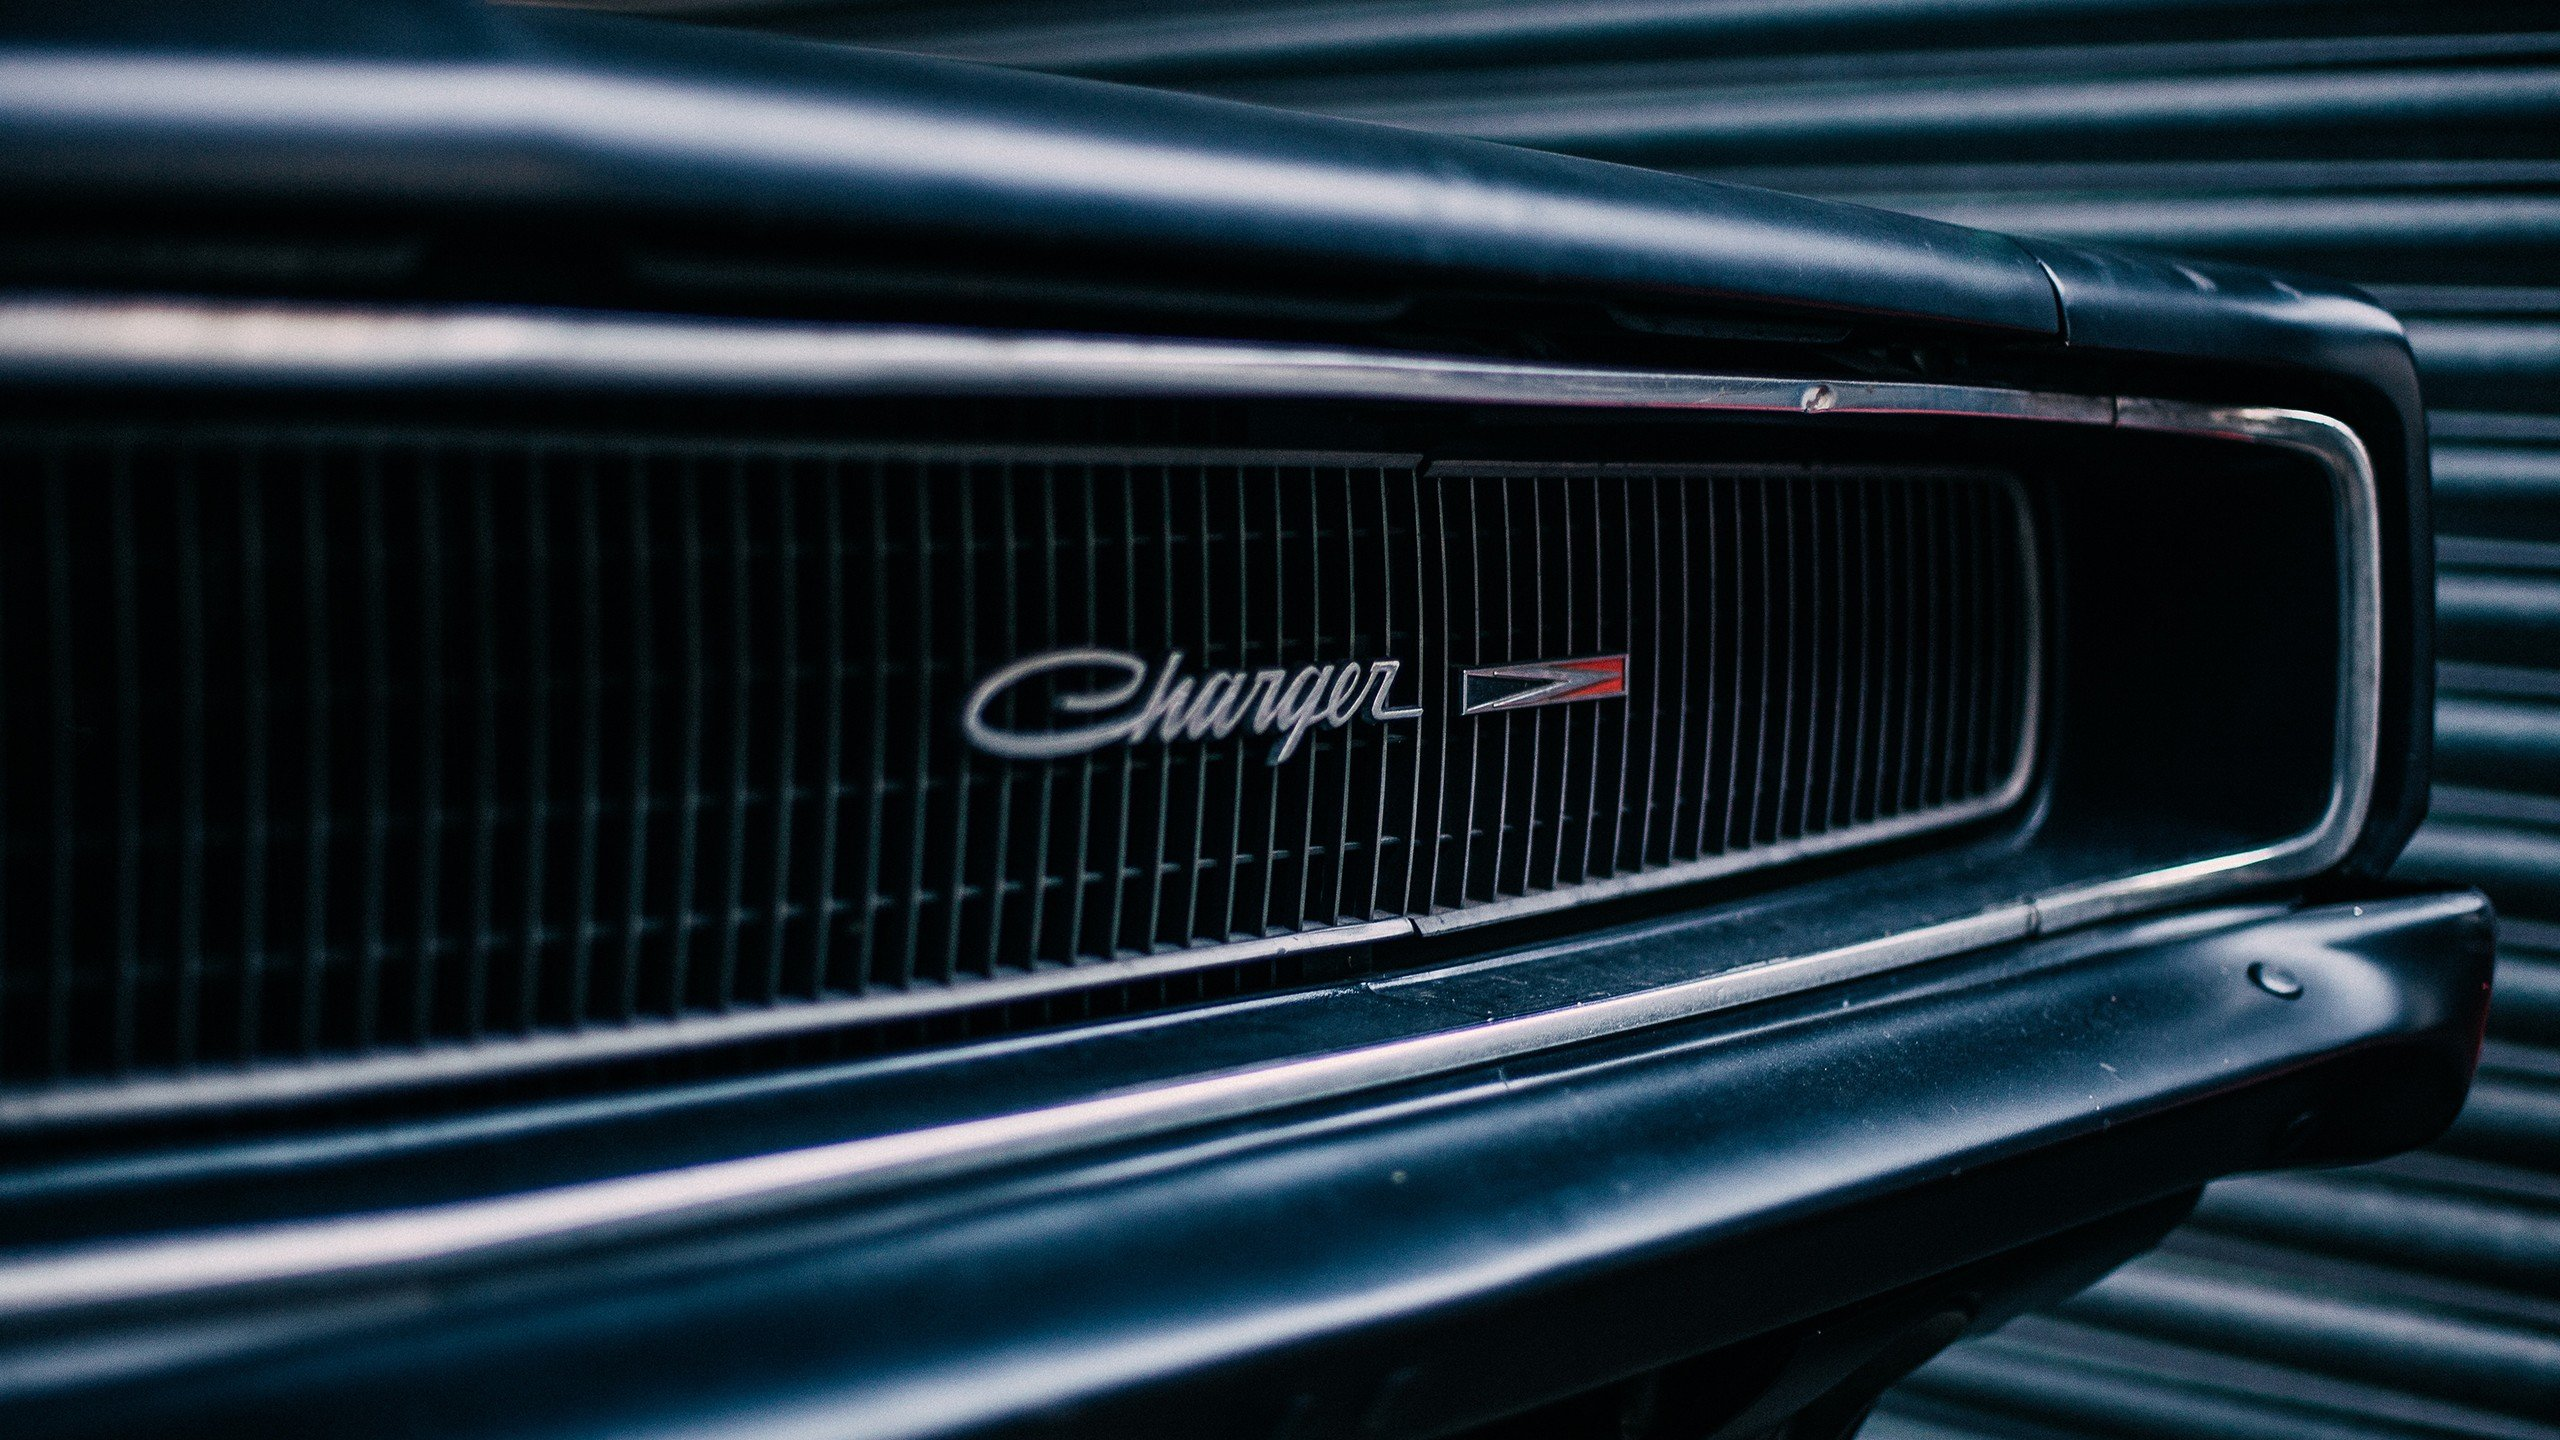 Charger wallpaper